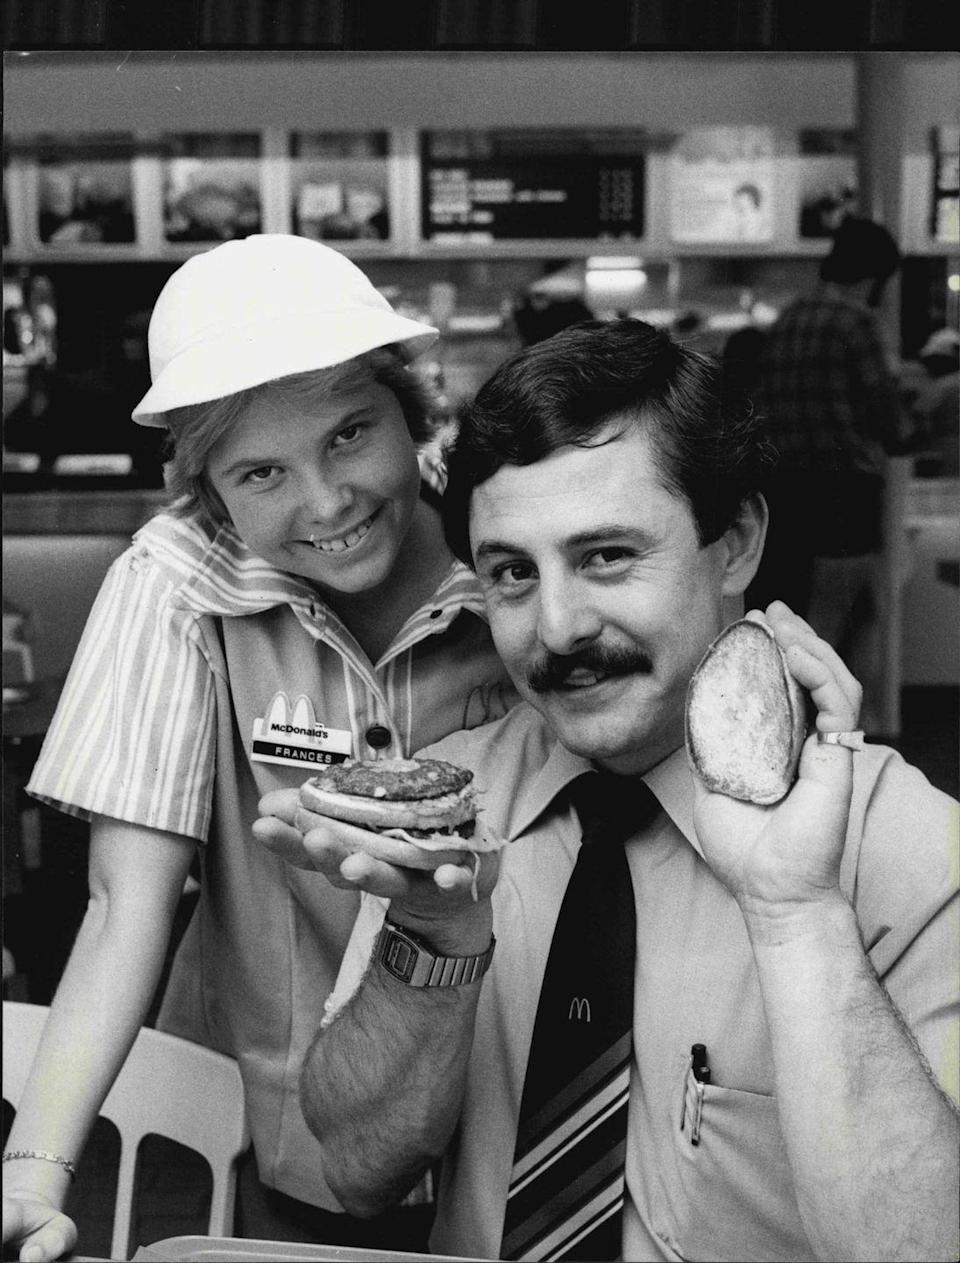 <p>Back in 1961, McDonald's started Hamburger University, a week-long course that gave managers a crash course in everything from customer service to kitchen protocol—and it still exists today. Here's a manager and student showing off what they learned in the '80s.</p>